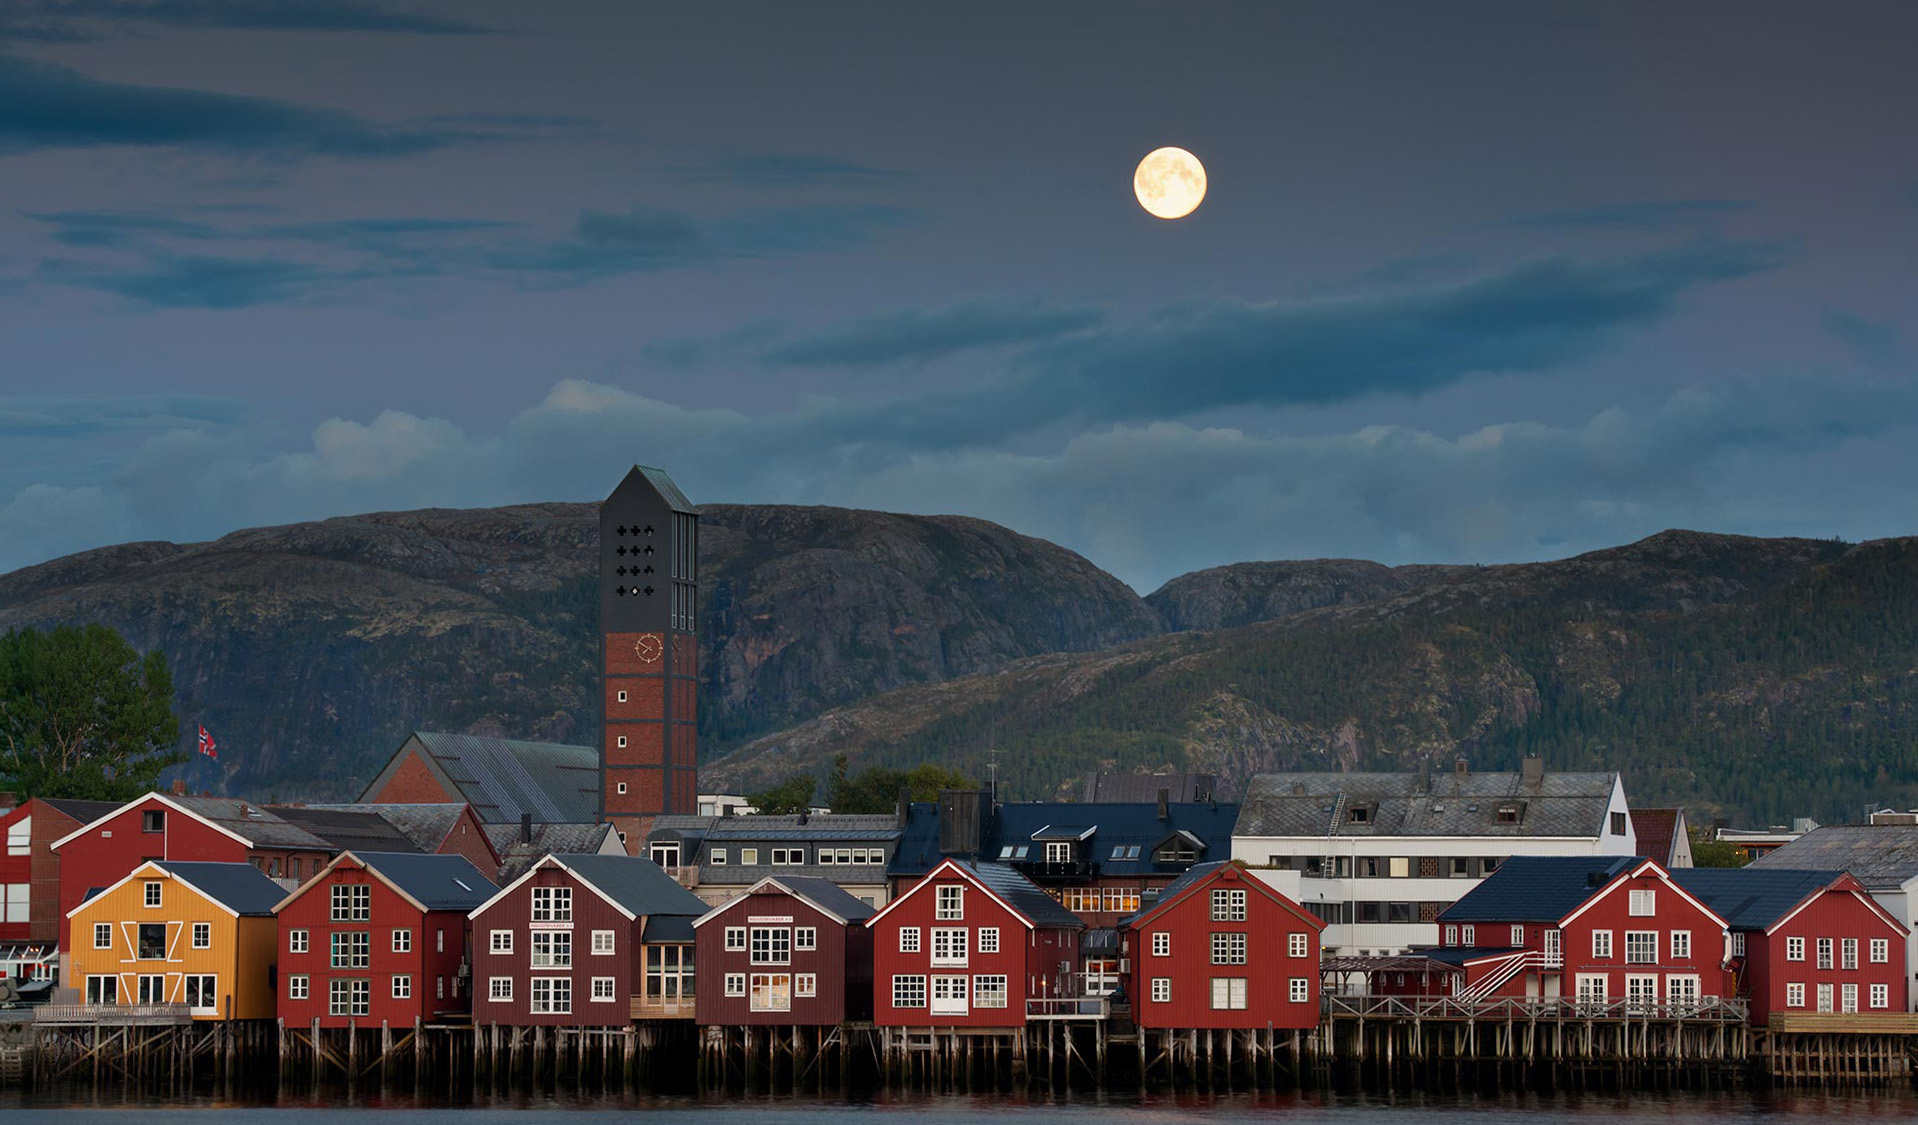 The moon shines on the docks of Namsos.